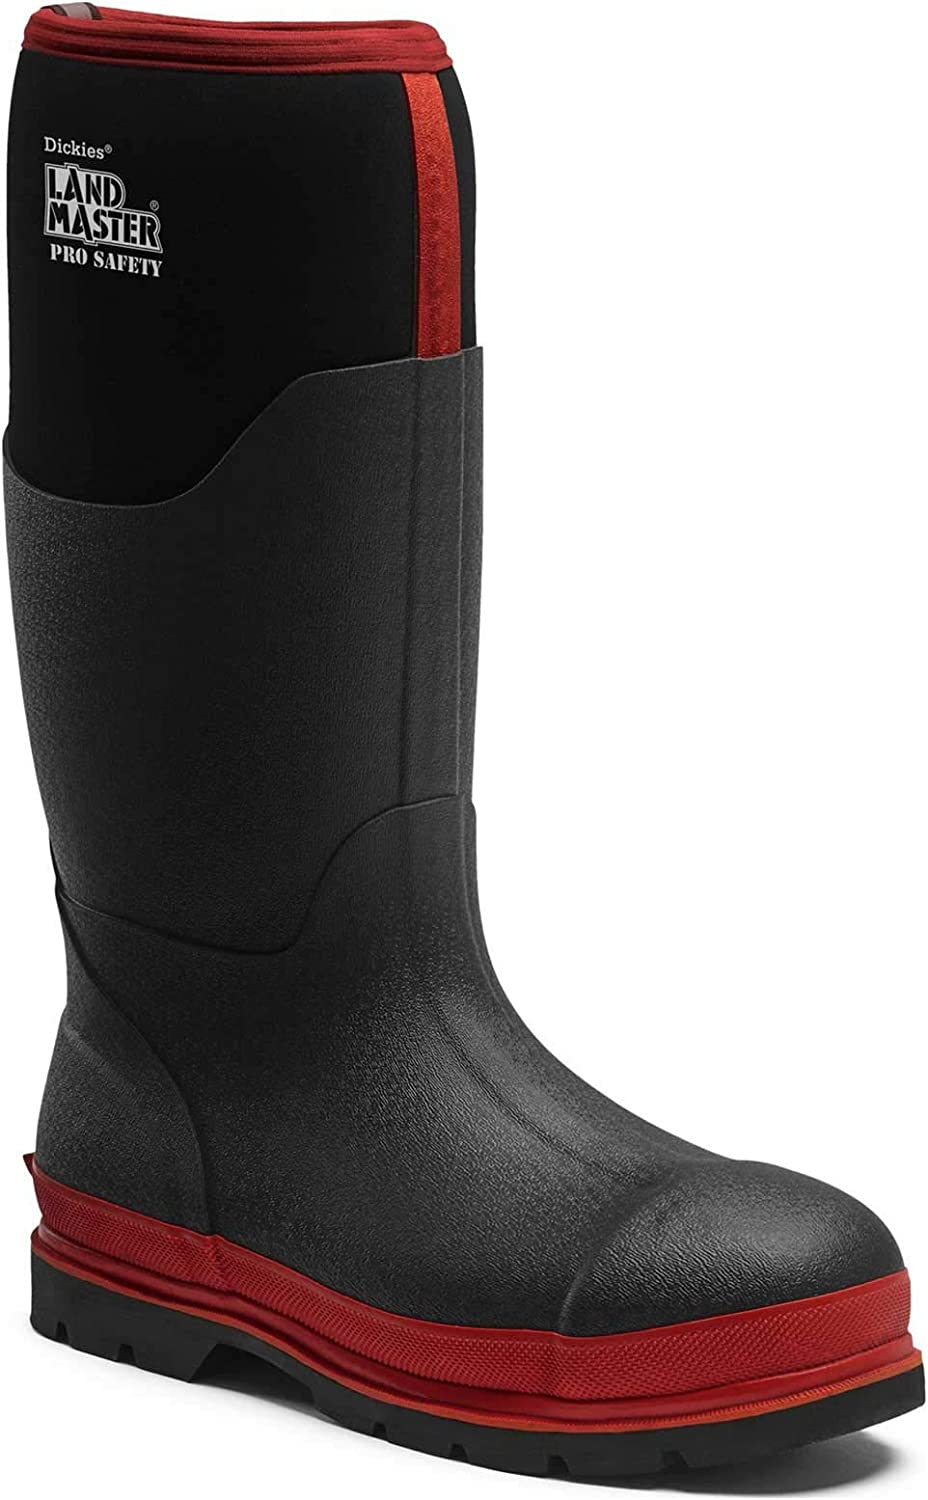 Dickies Landmaster Pro Safety Wellington Boots Black Red Size 12